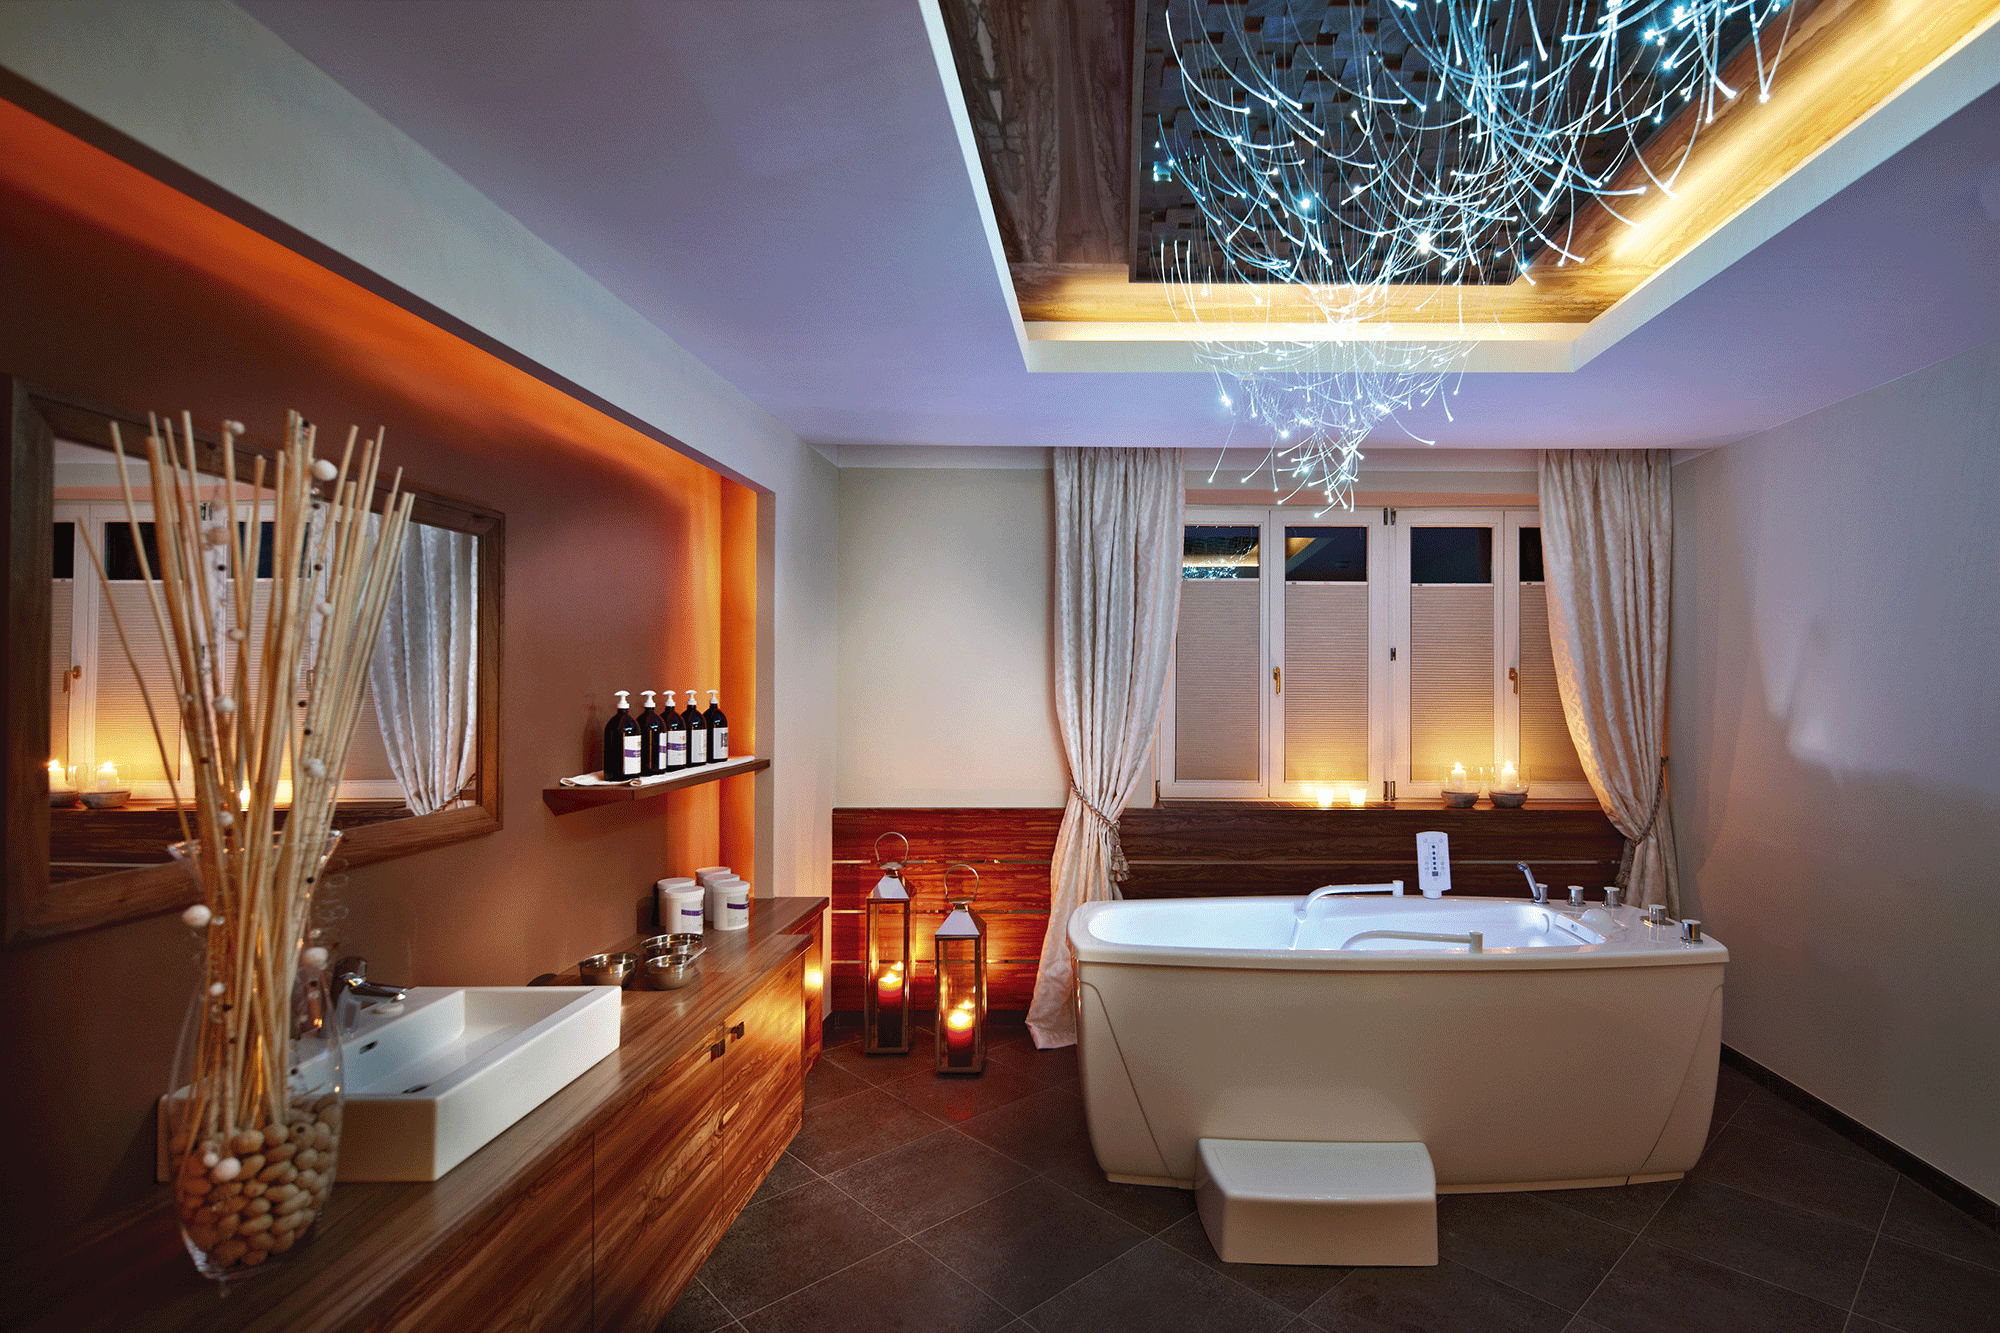 Spa im Wellnesshotel Tirol